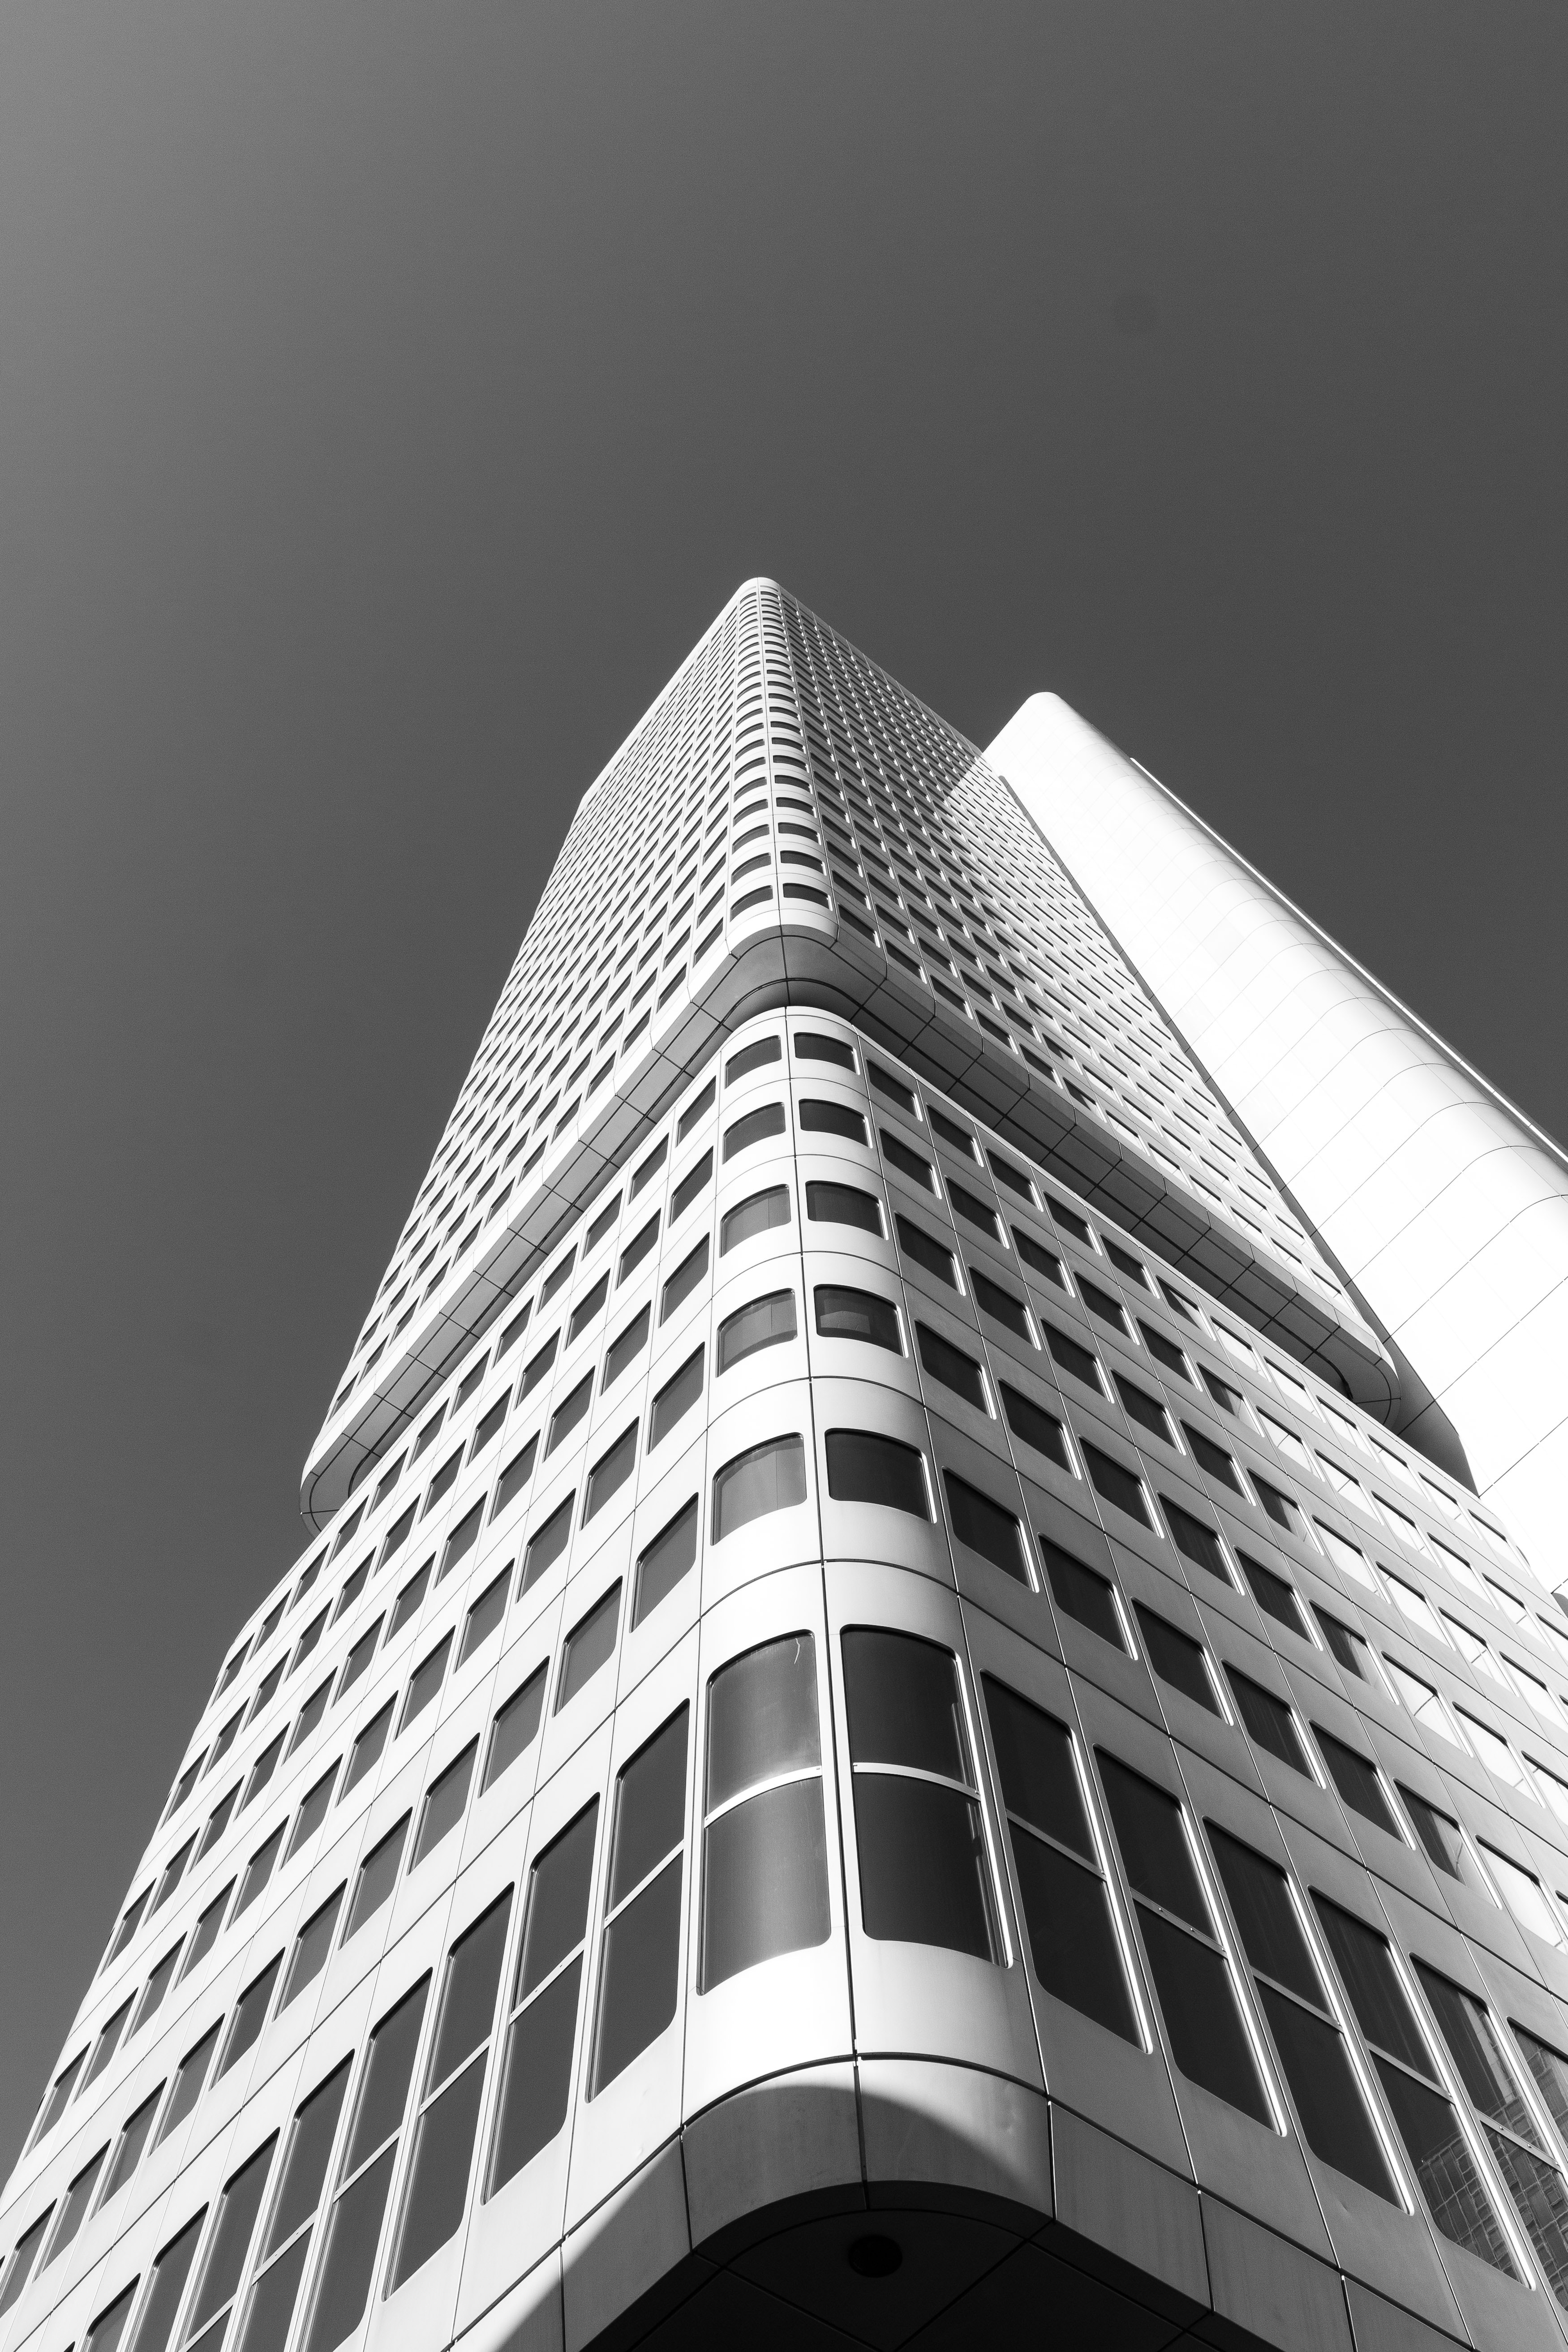 low-angle photography of high-rise building